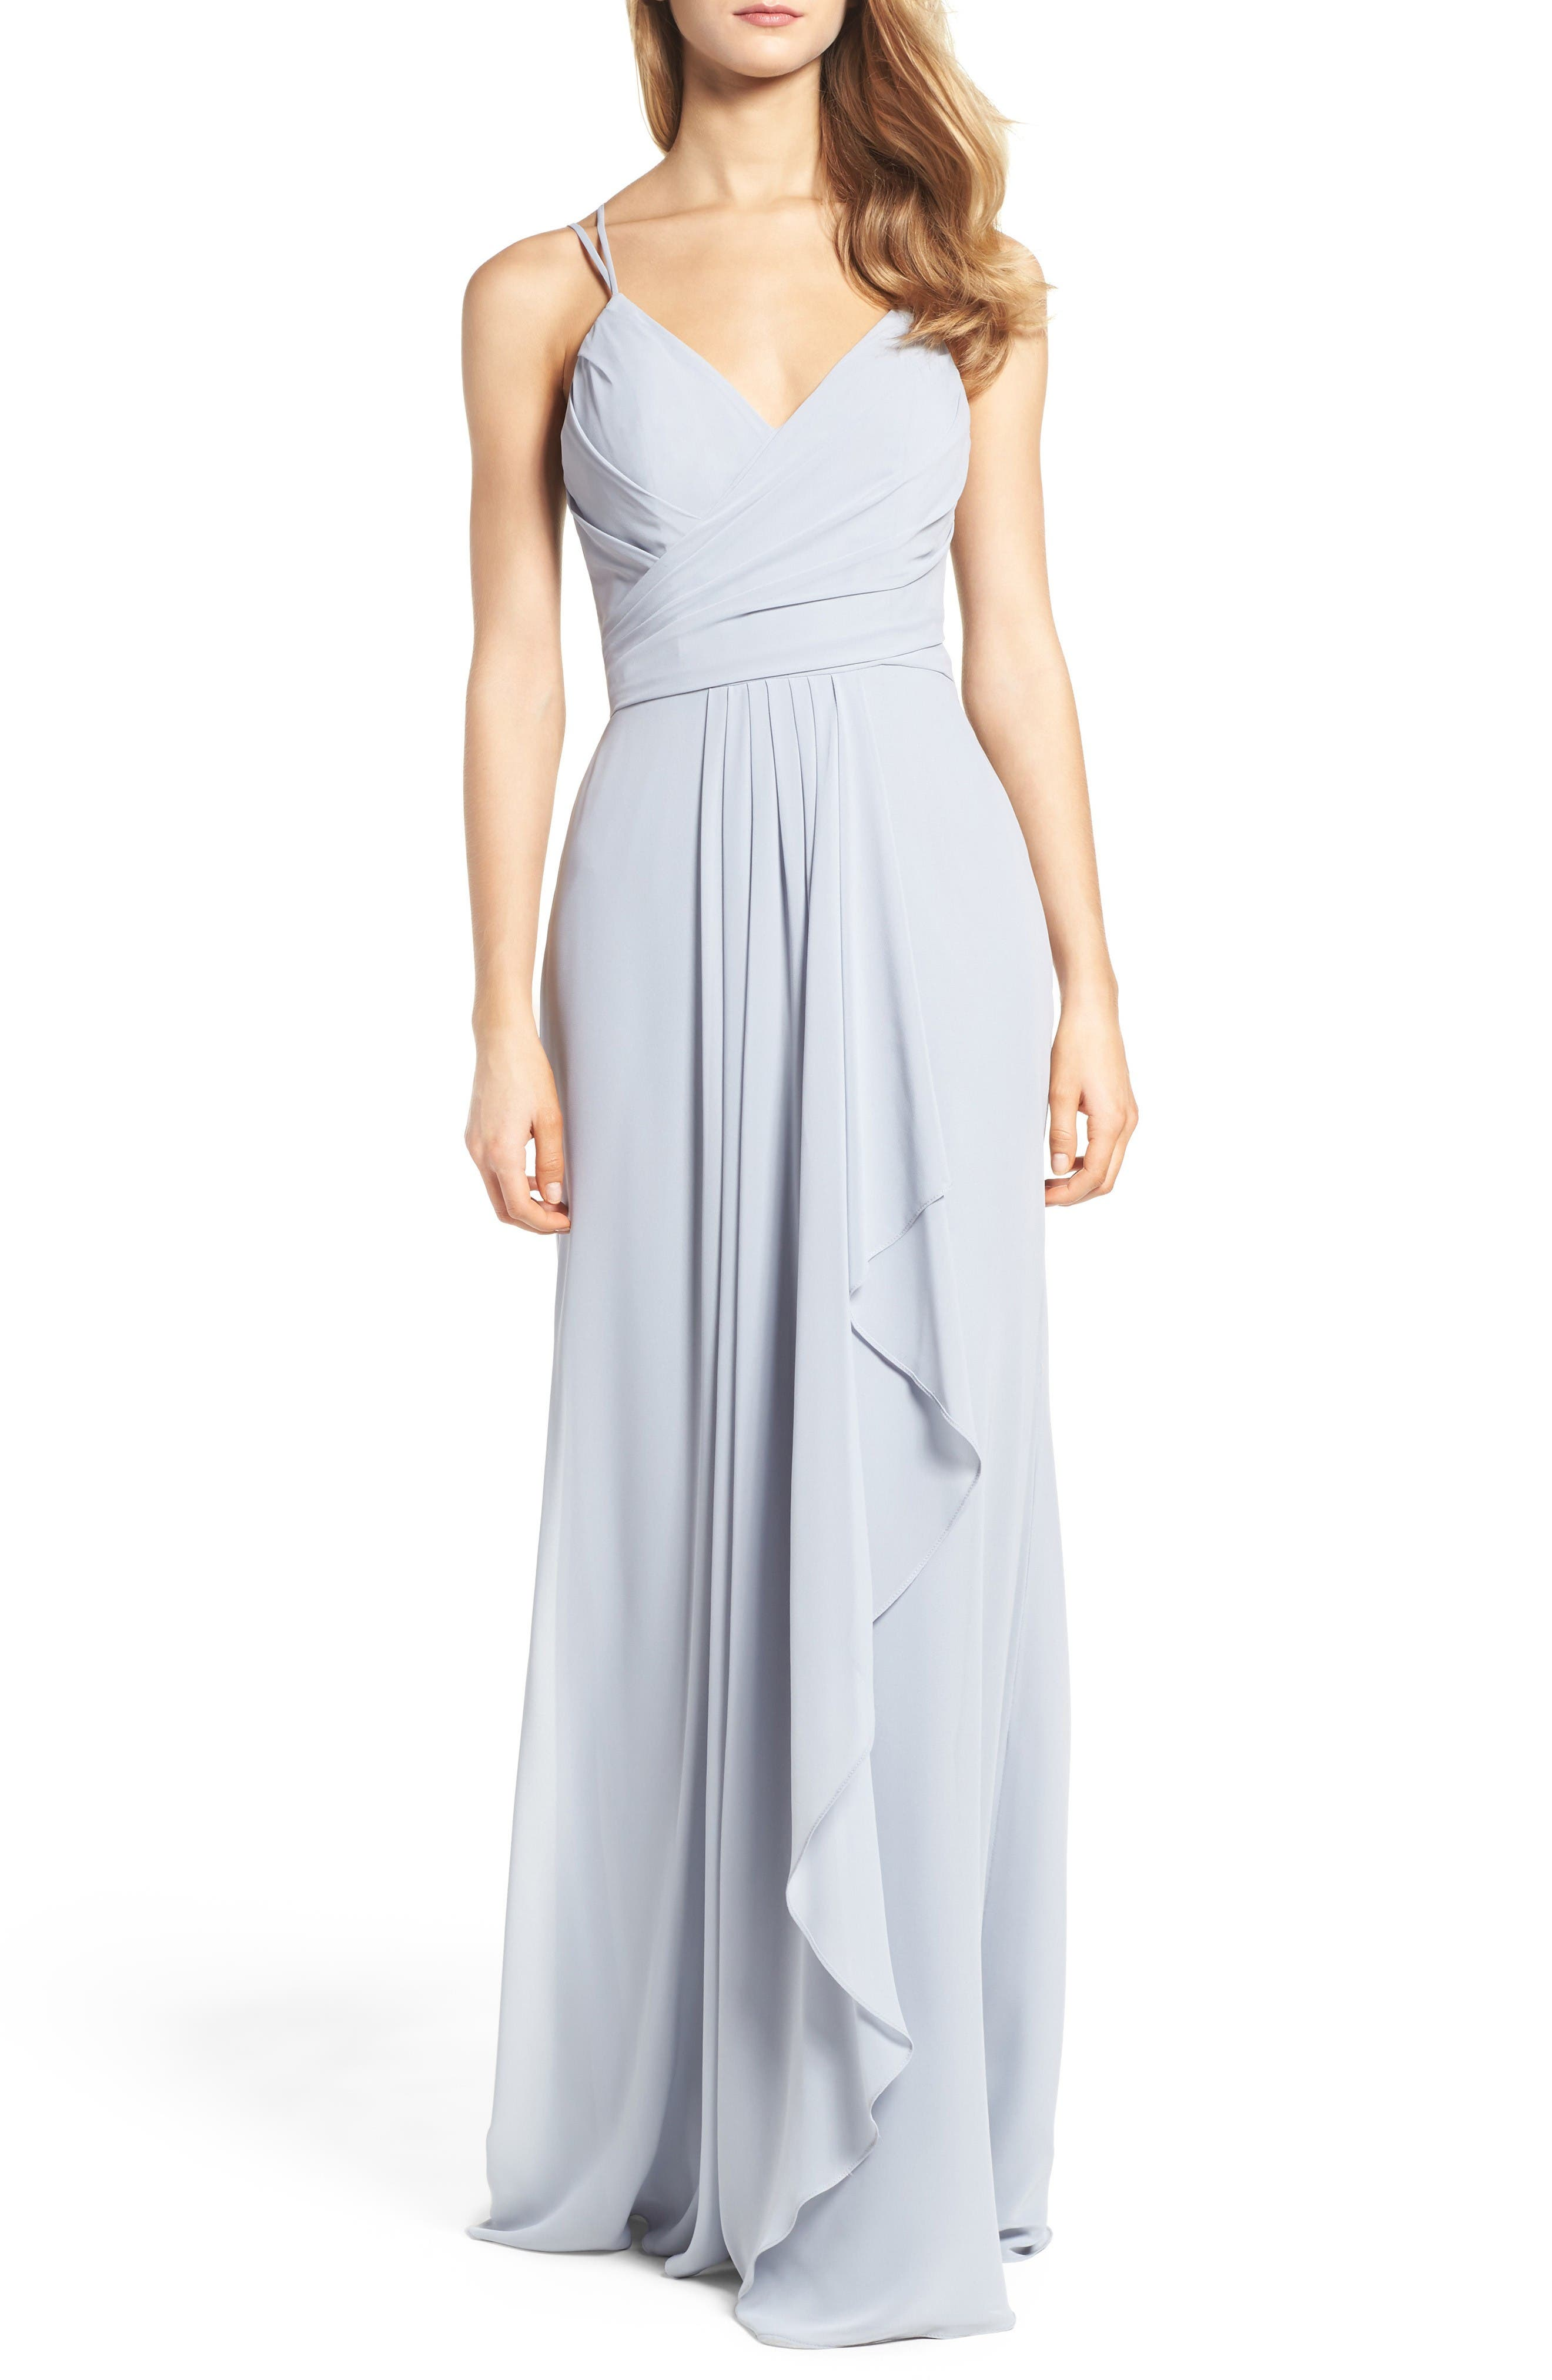 Alternate Image 1 Selected - Hayley Paige Occasions Chiffon Gown